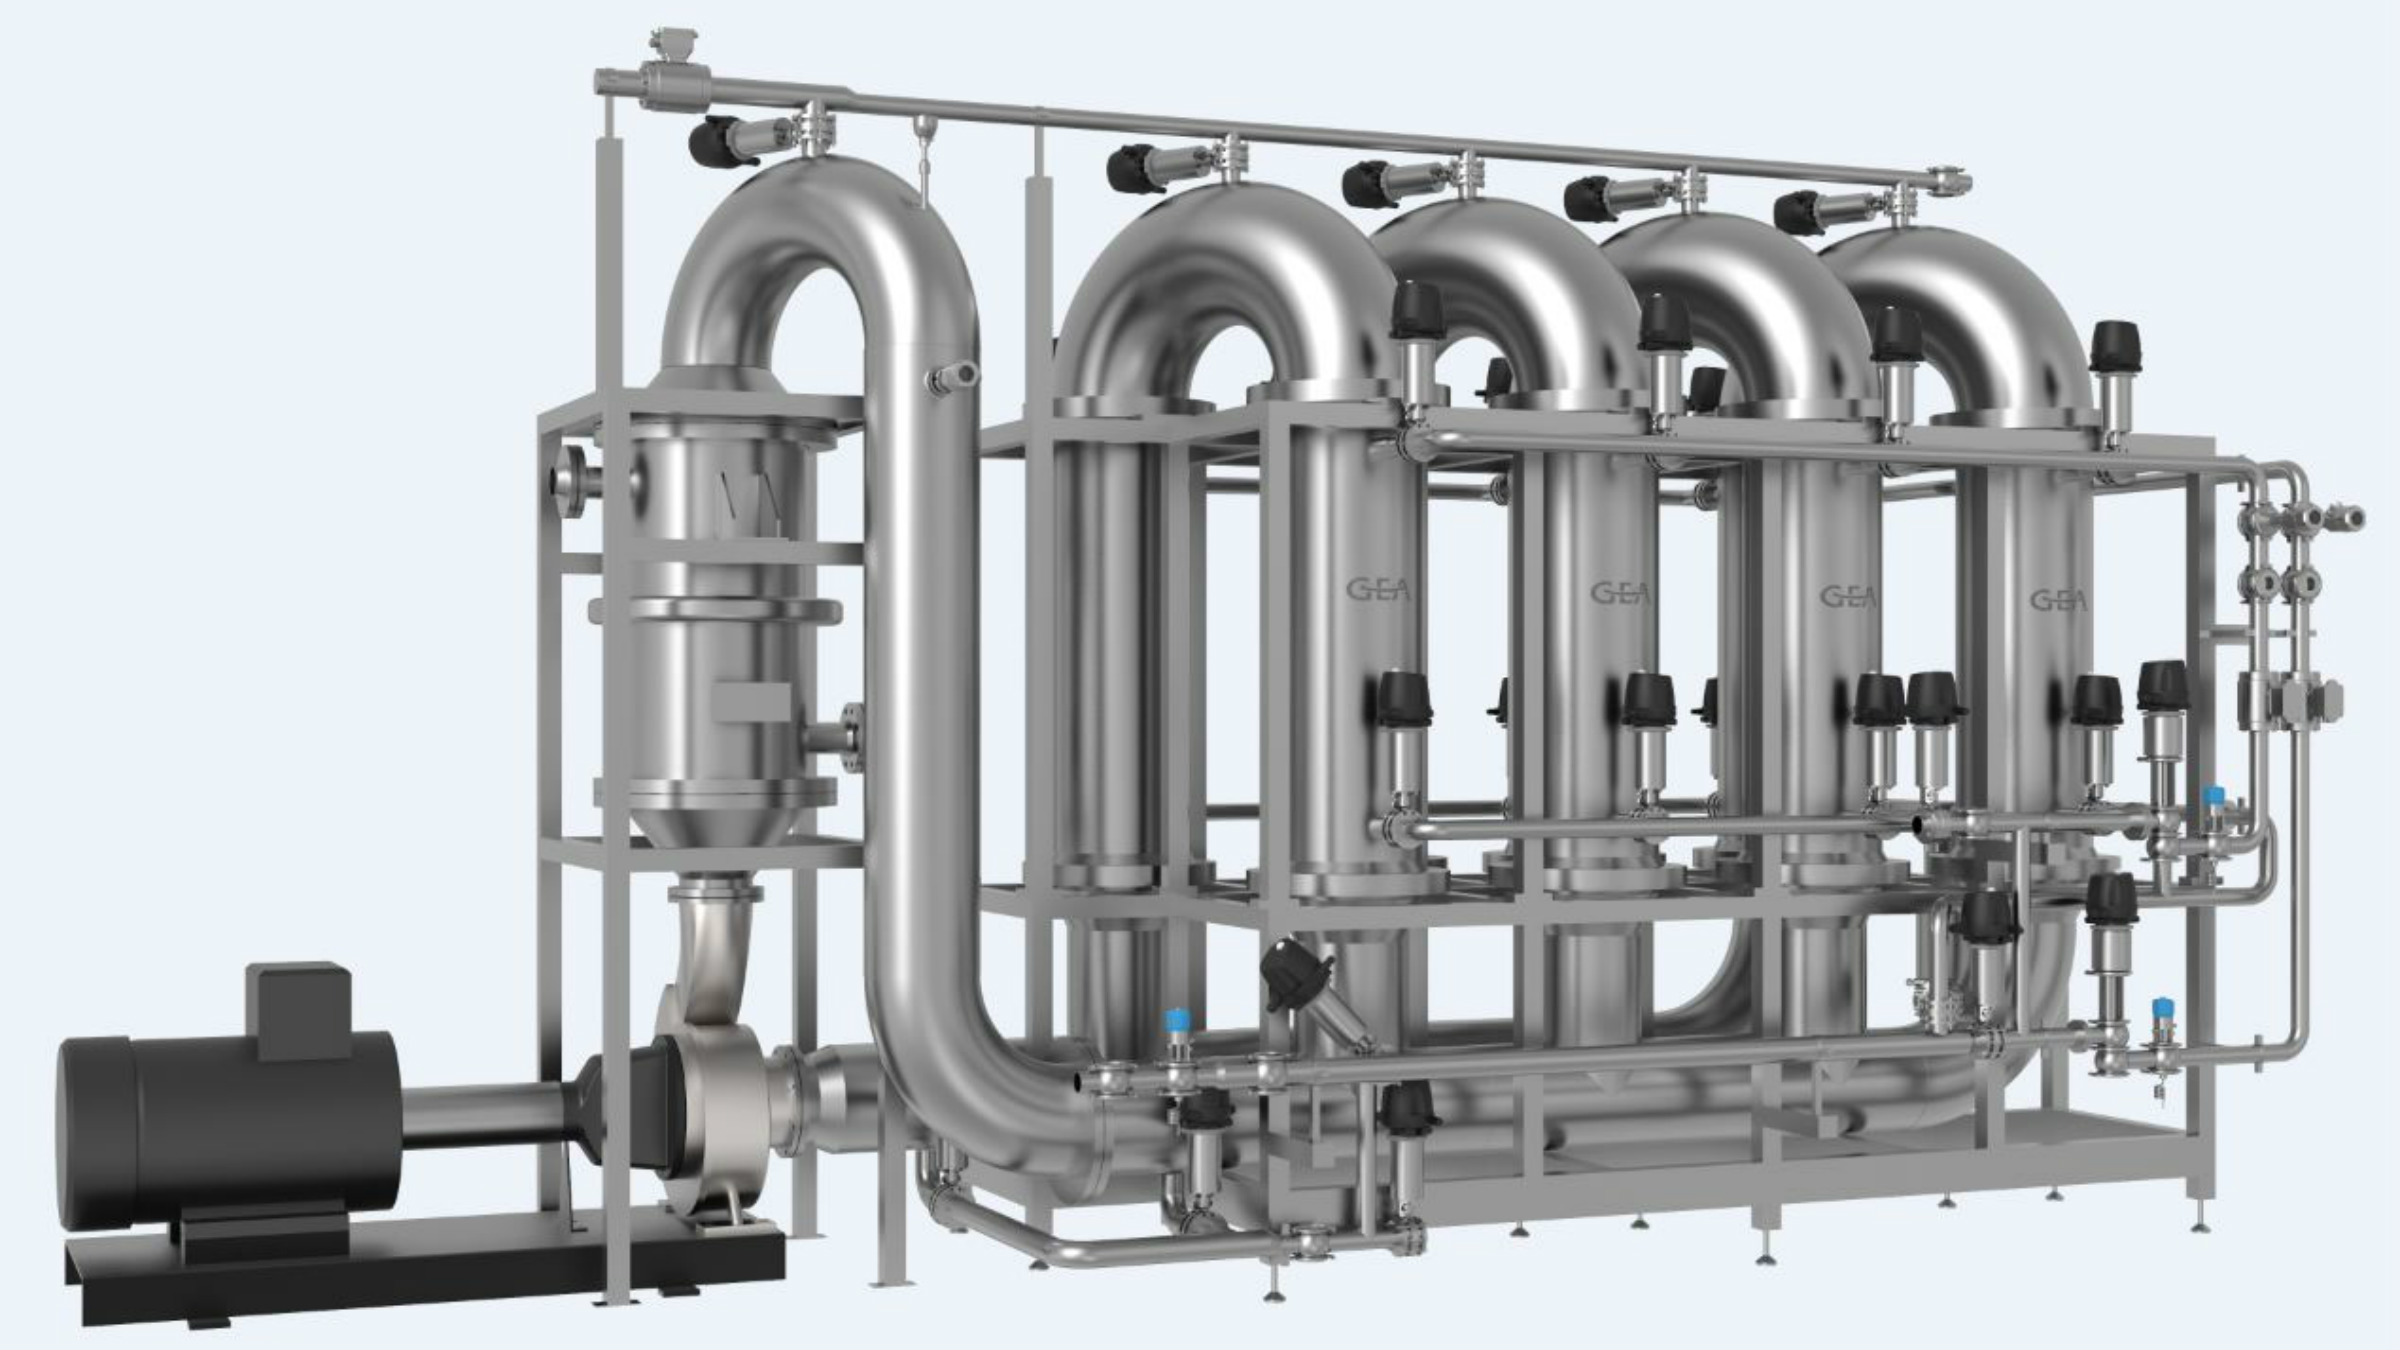 GEA clearamic plant for beer filtration. Image: GEA